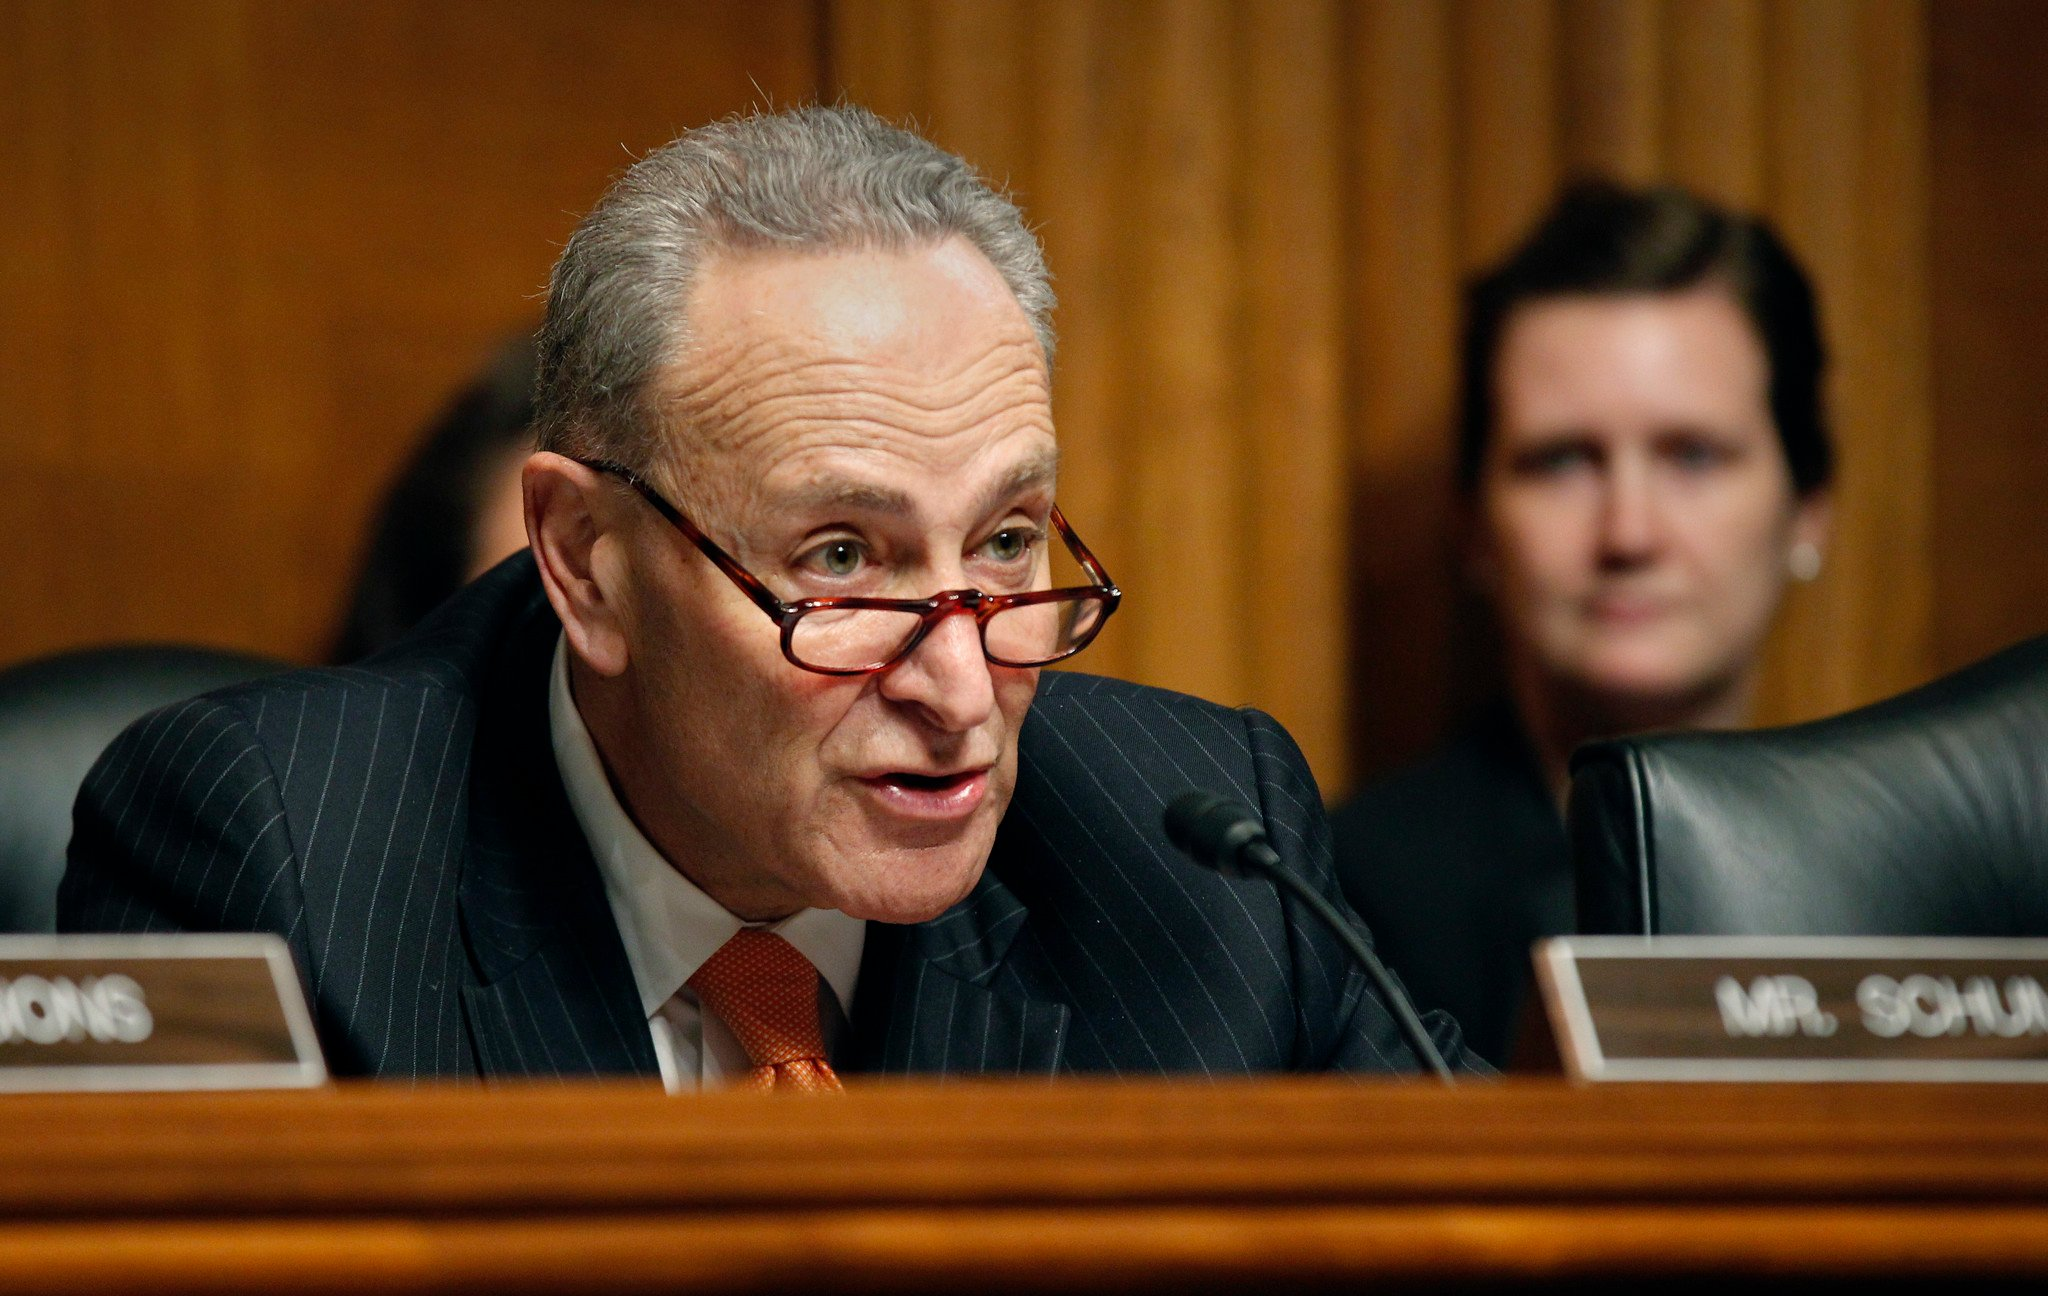 After Defending Supreme Court Threats, Schumer Now He Says He Misspoke